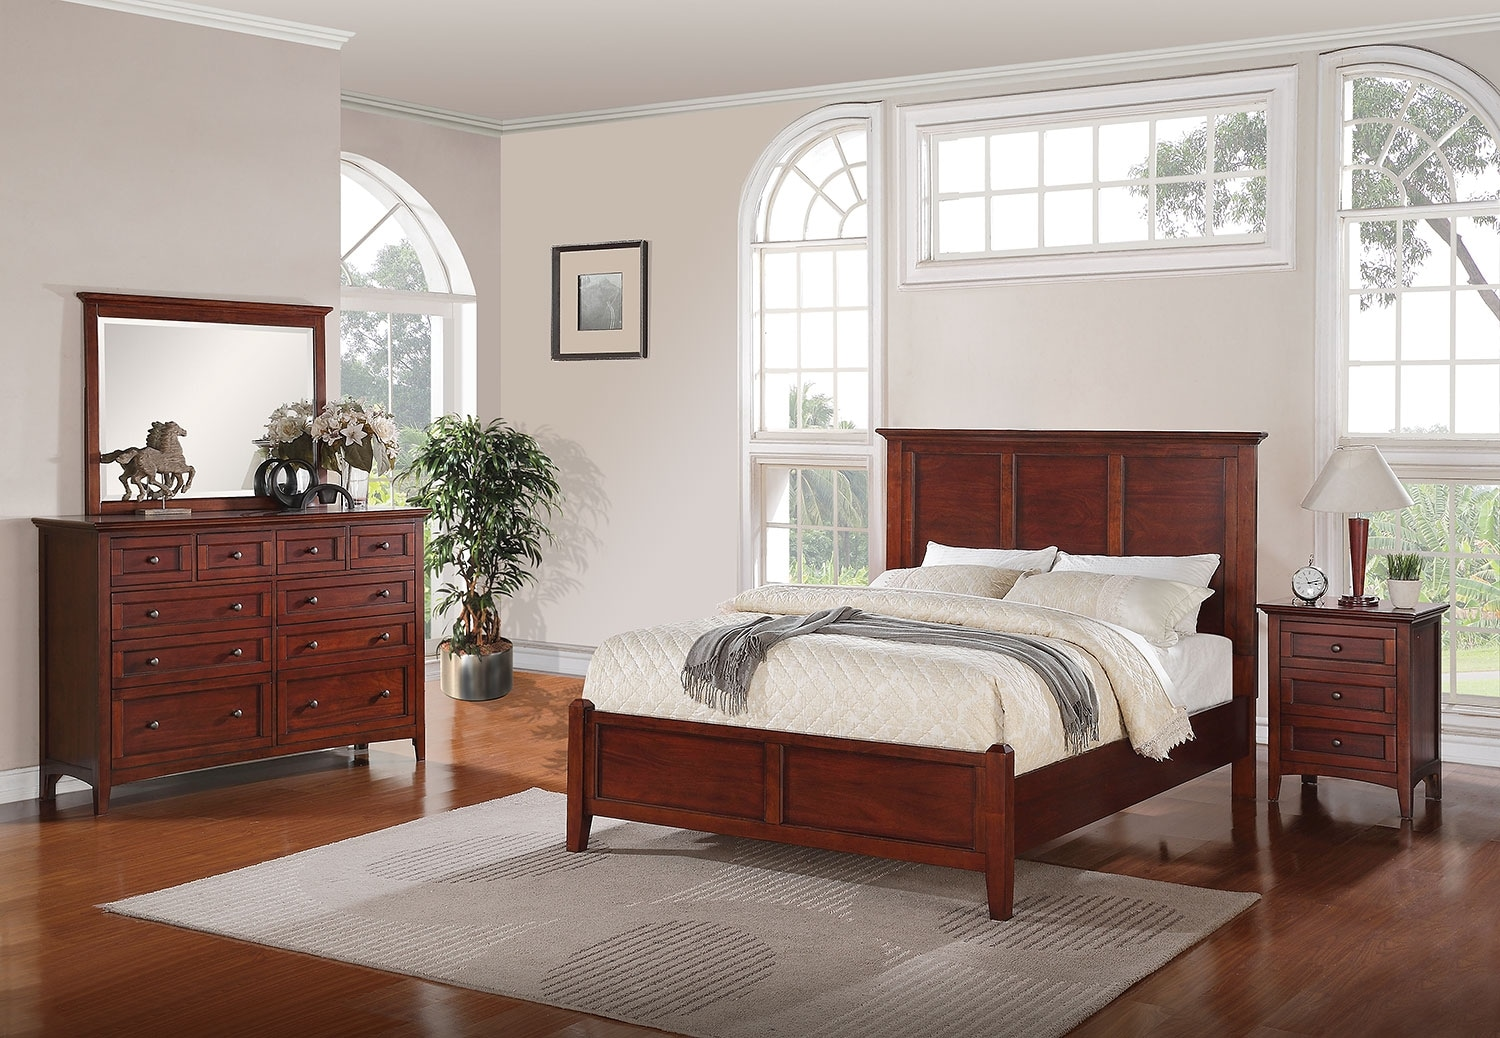 Forest Lake 5-Piece Queen Bedroom Set - Mahogany